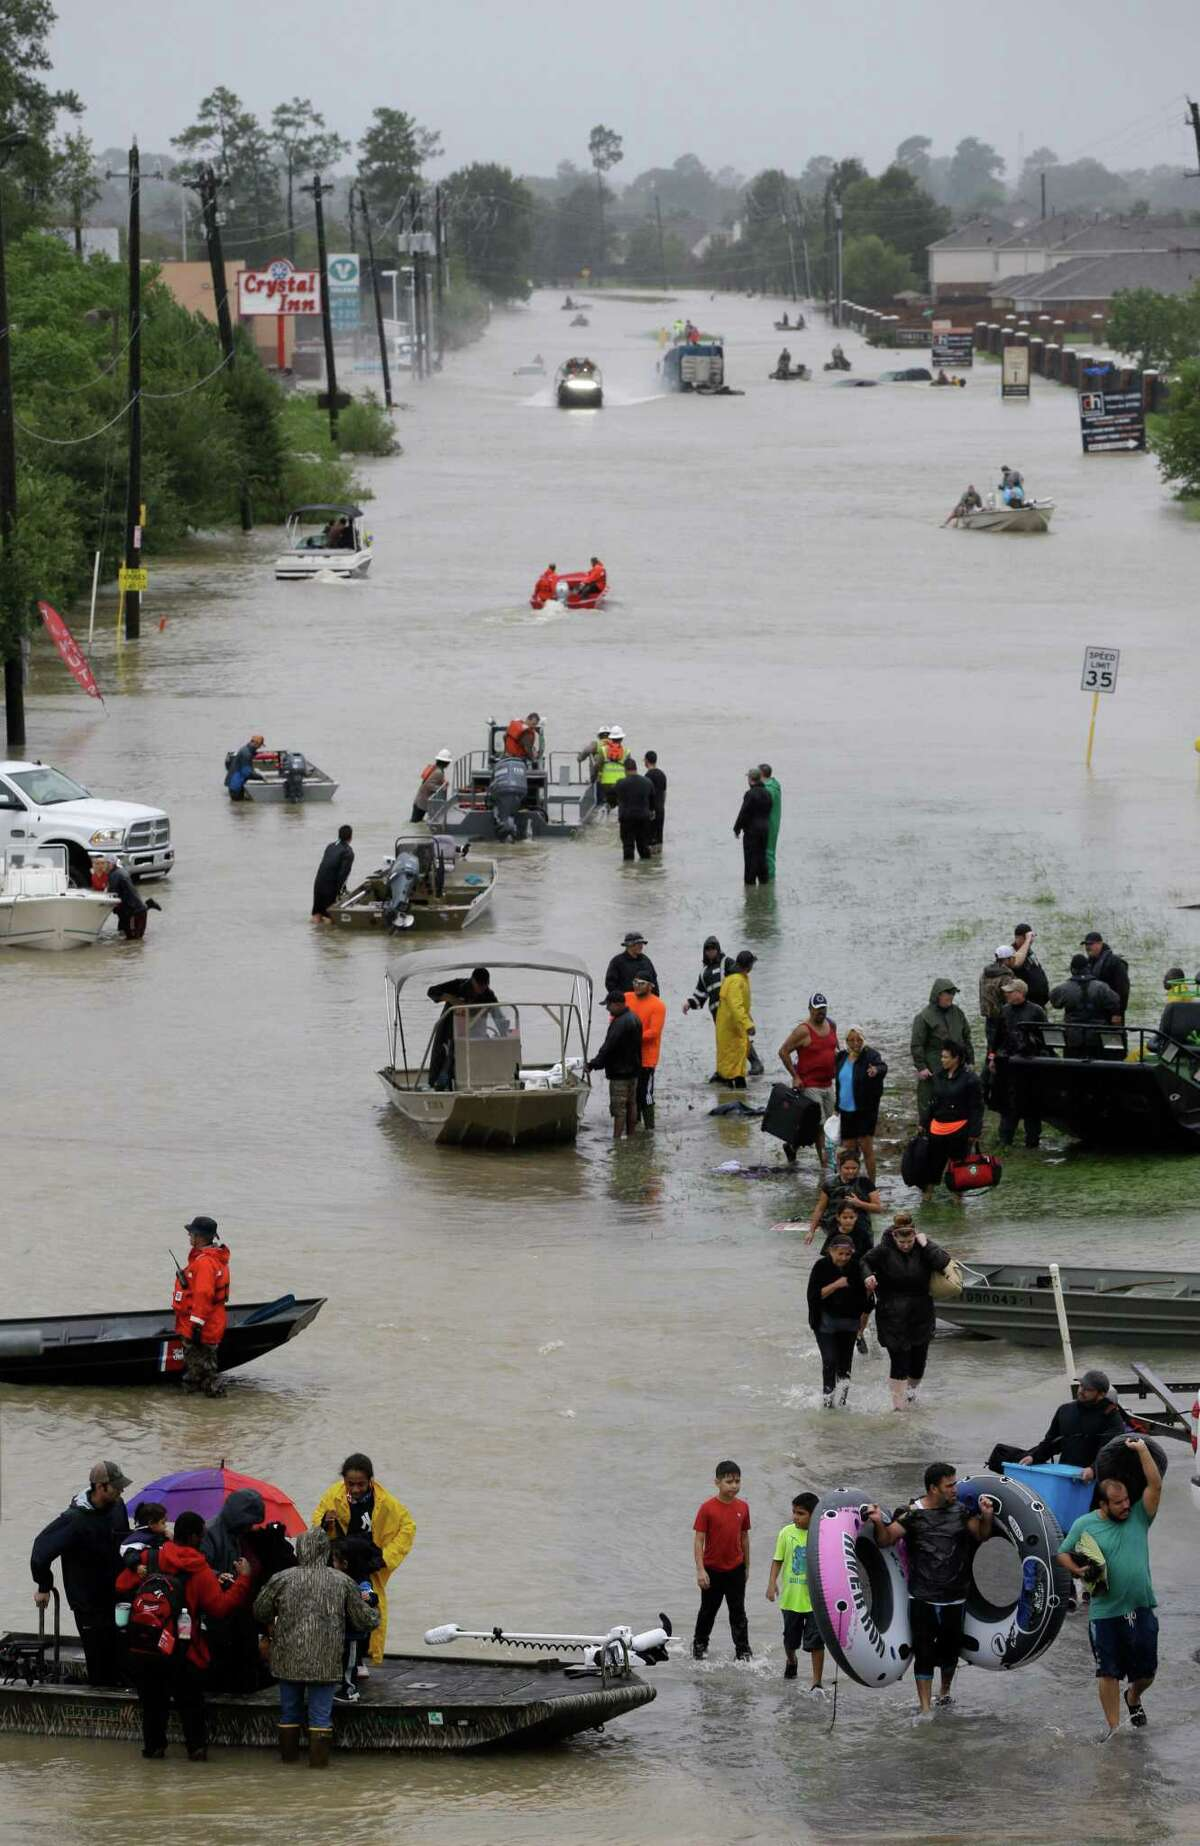 Rescue boats work along Tidwell at the east Sam Houston Tollway helping to evacuate people Monday, August 28, 2017 after Hurricane Harvey inundated the area. >>See the devastation left by Hurricane Harvey through Google Maps in the photos that follow.